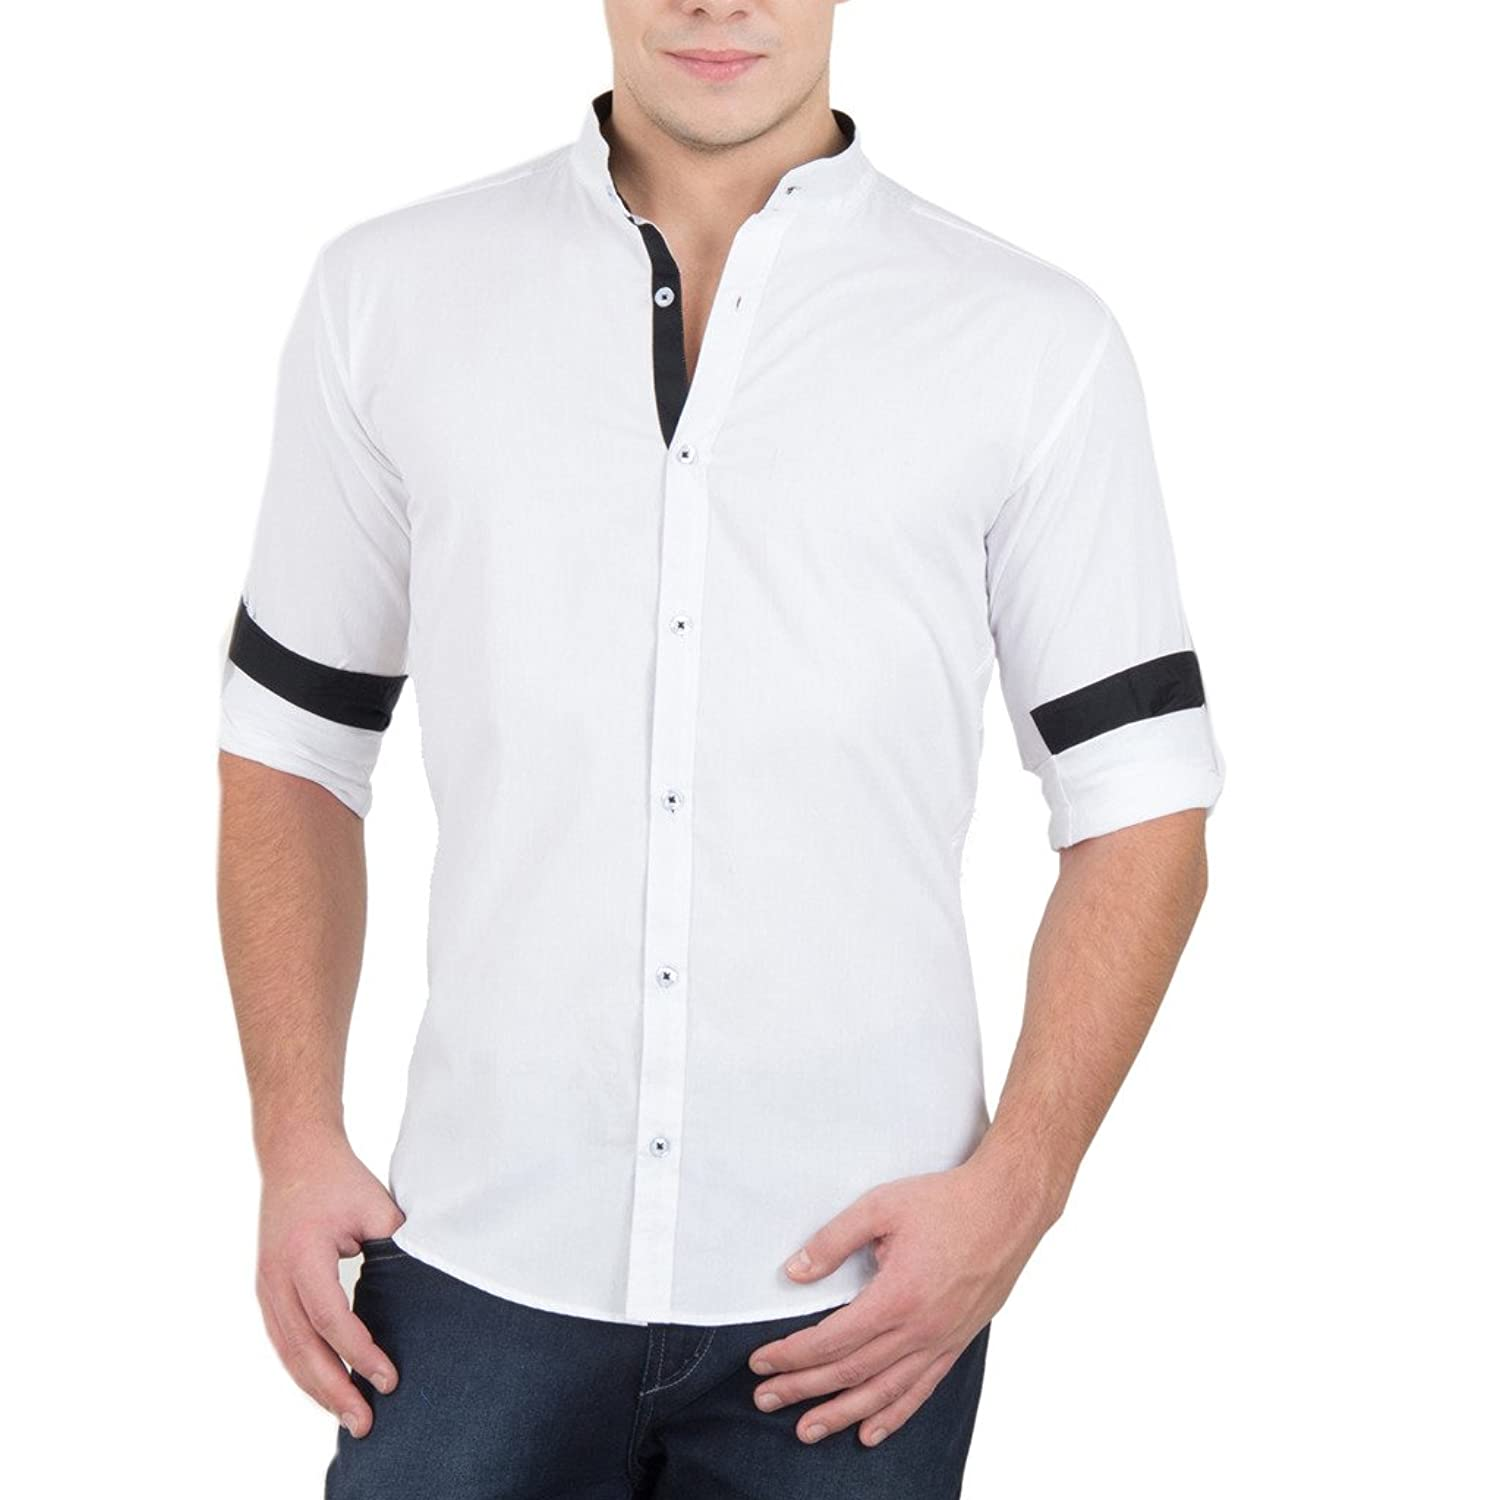 The best casual shirts for men All rules are out of the window when it comes to casual shirts, you can pick whichever matches your style. These can worn as a single layer, or paired with a t-shirt.